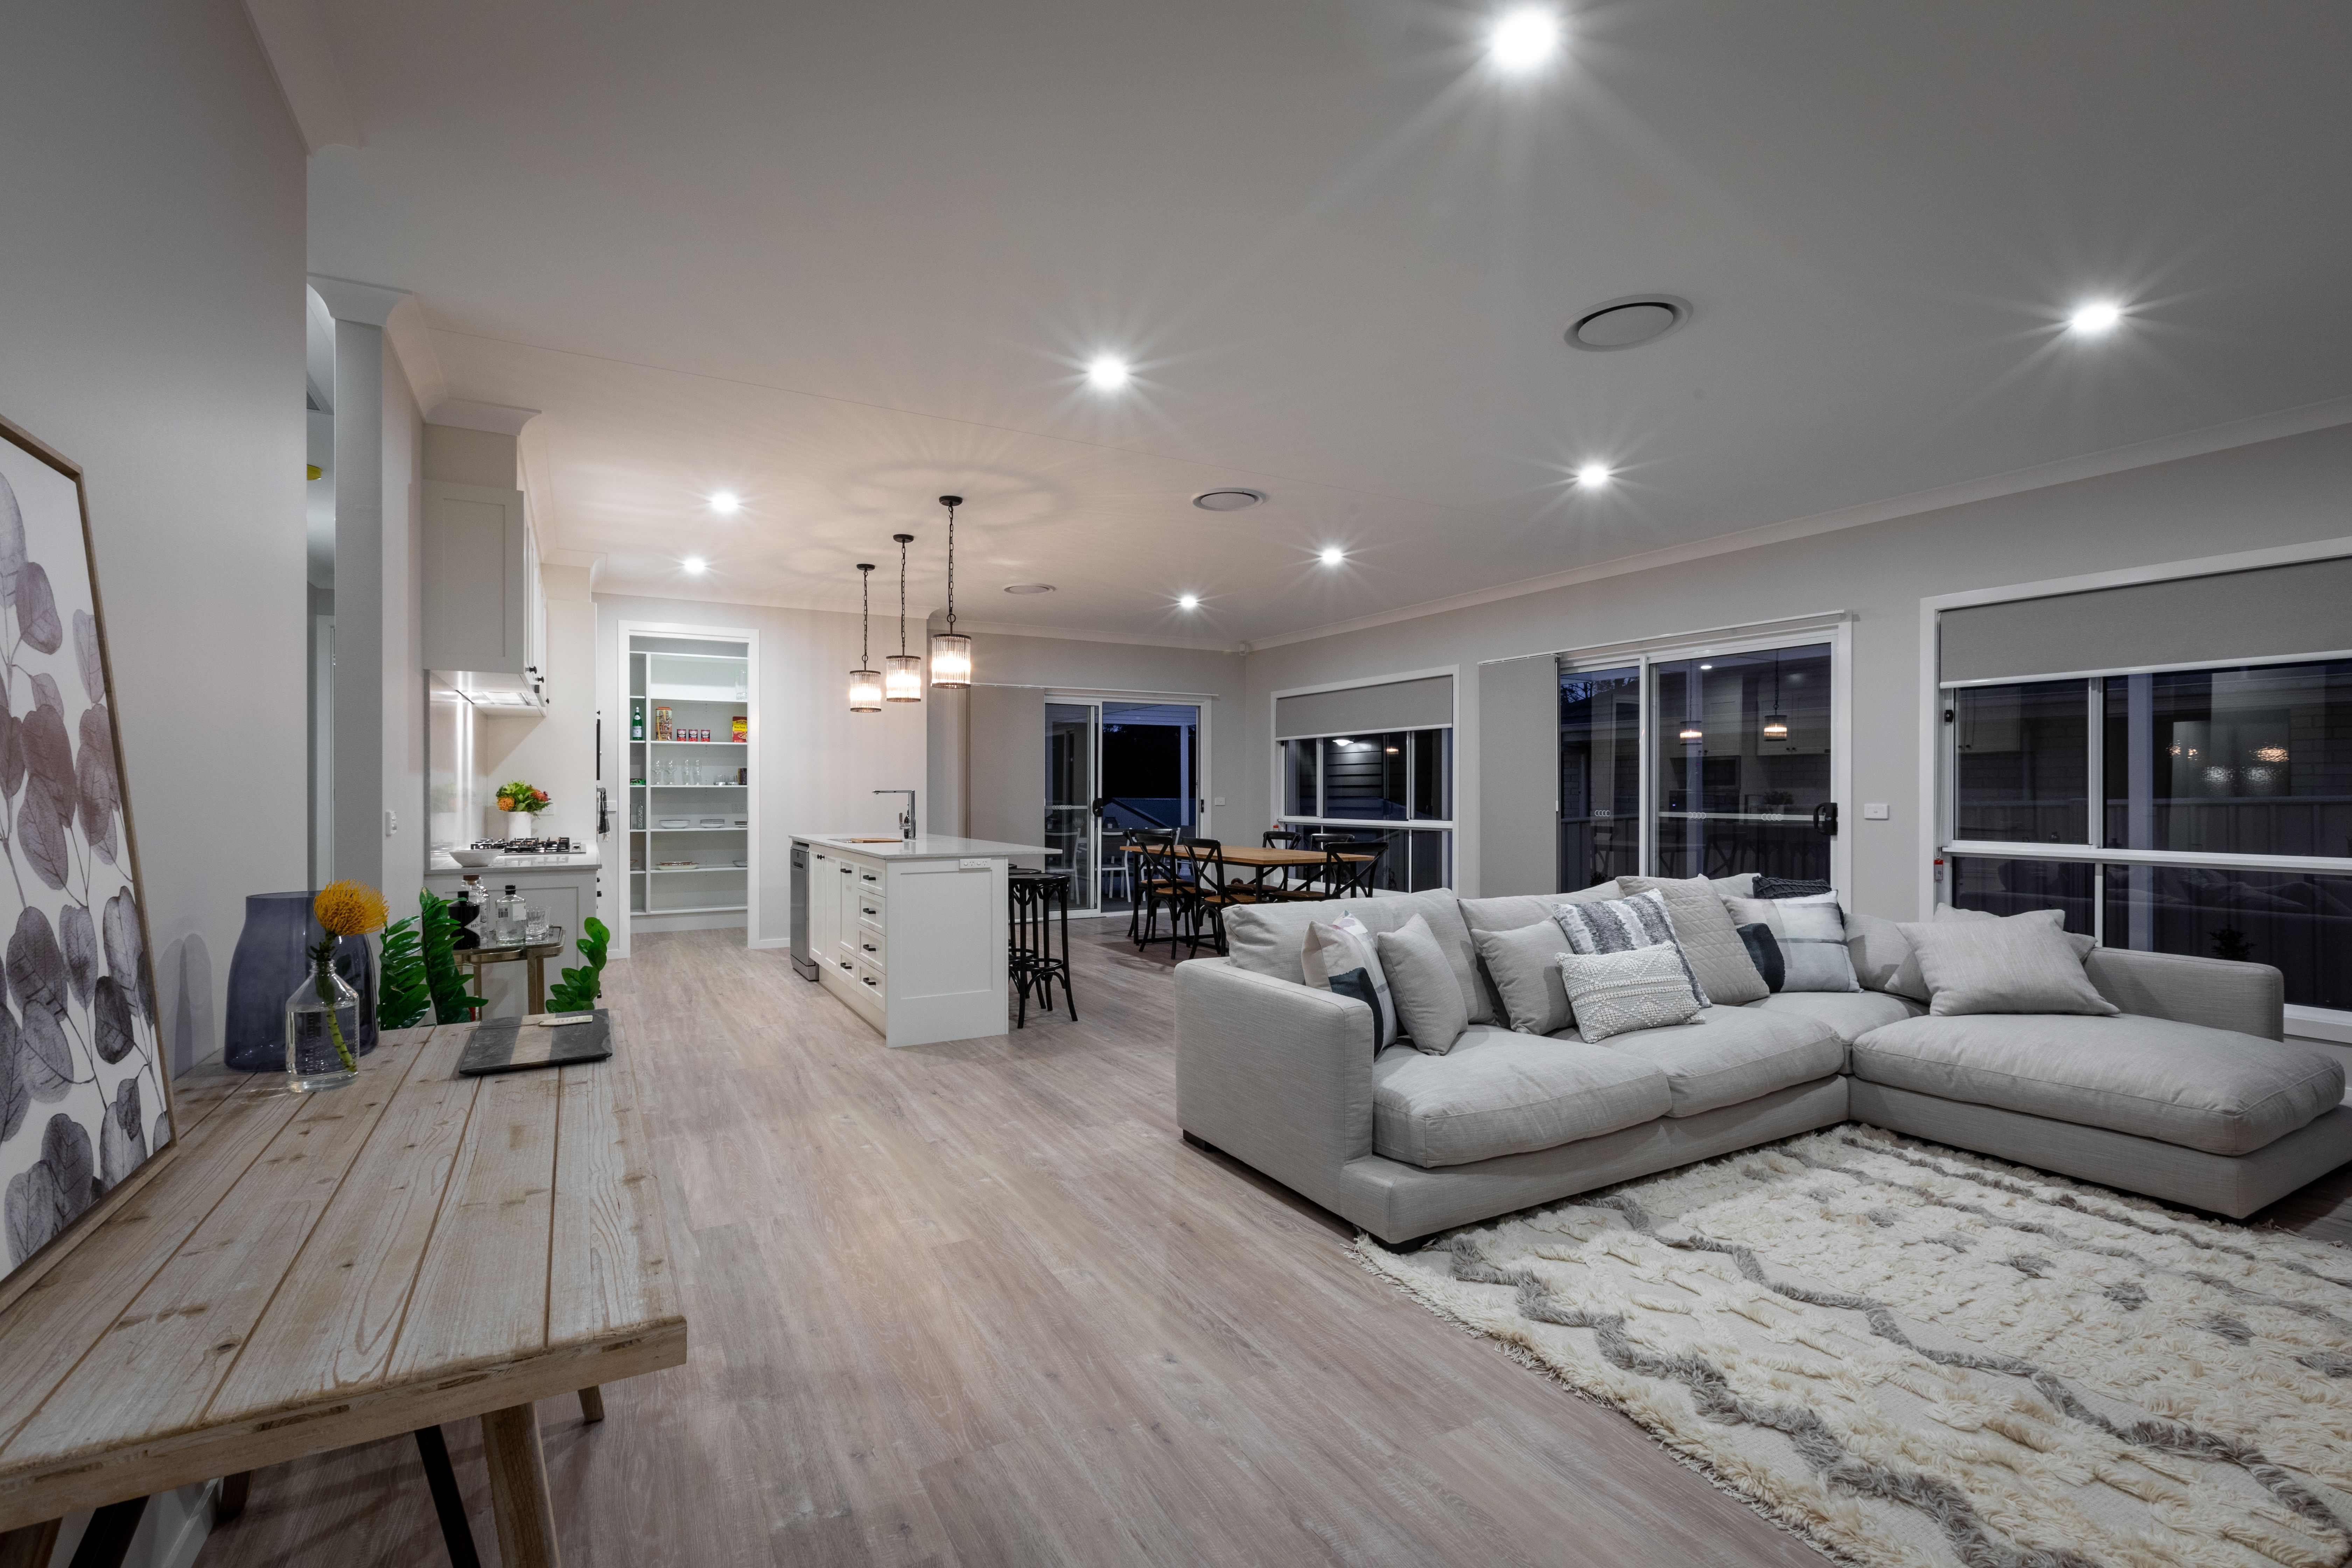 Pin On Home Ideas Open plan living rooms